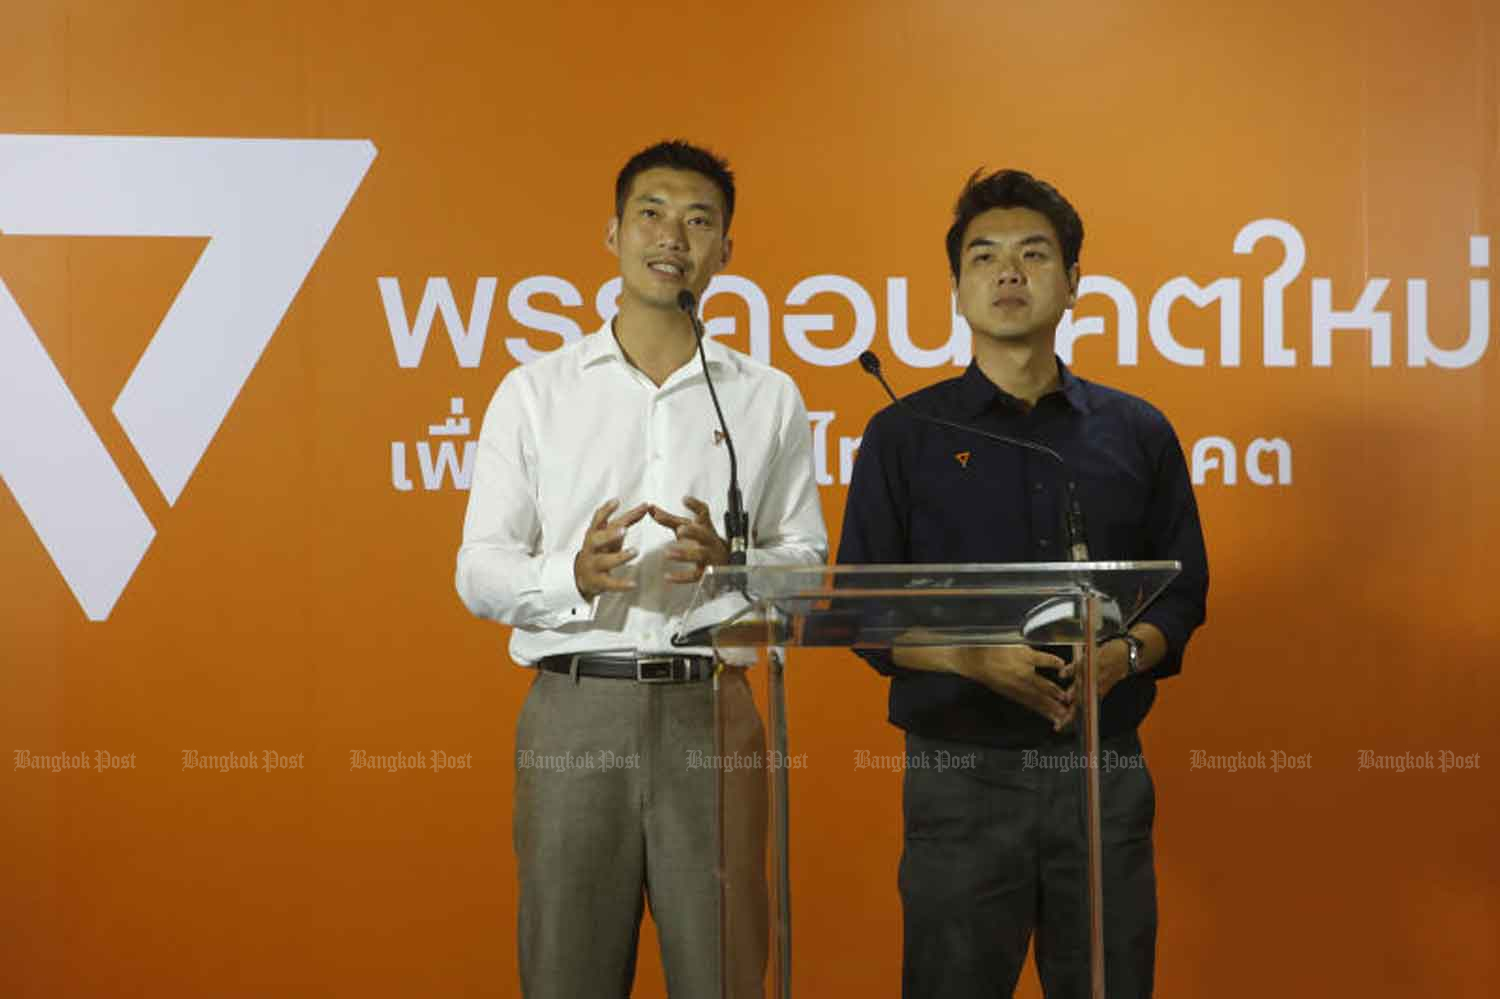 Future Forward Party's leader Thanathorn Juangroongruangkit, left, and its secretary-general Piyabutr Saengkanokkul